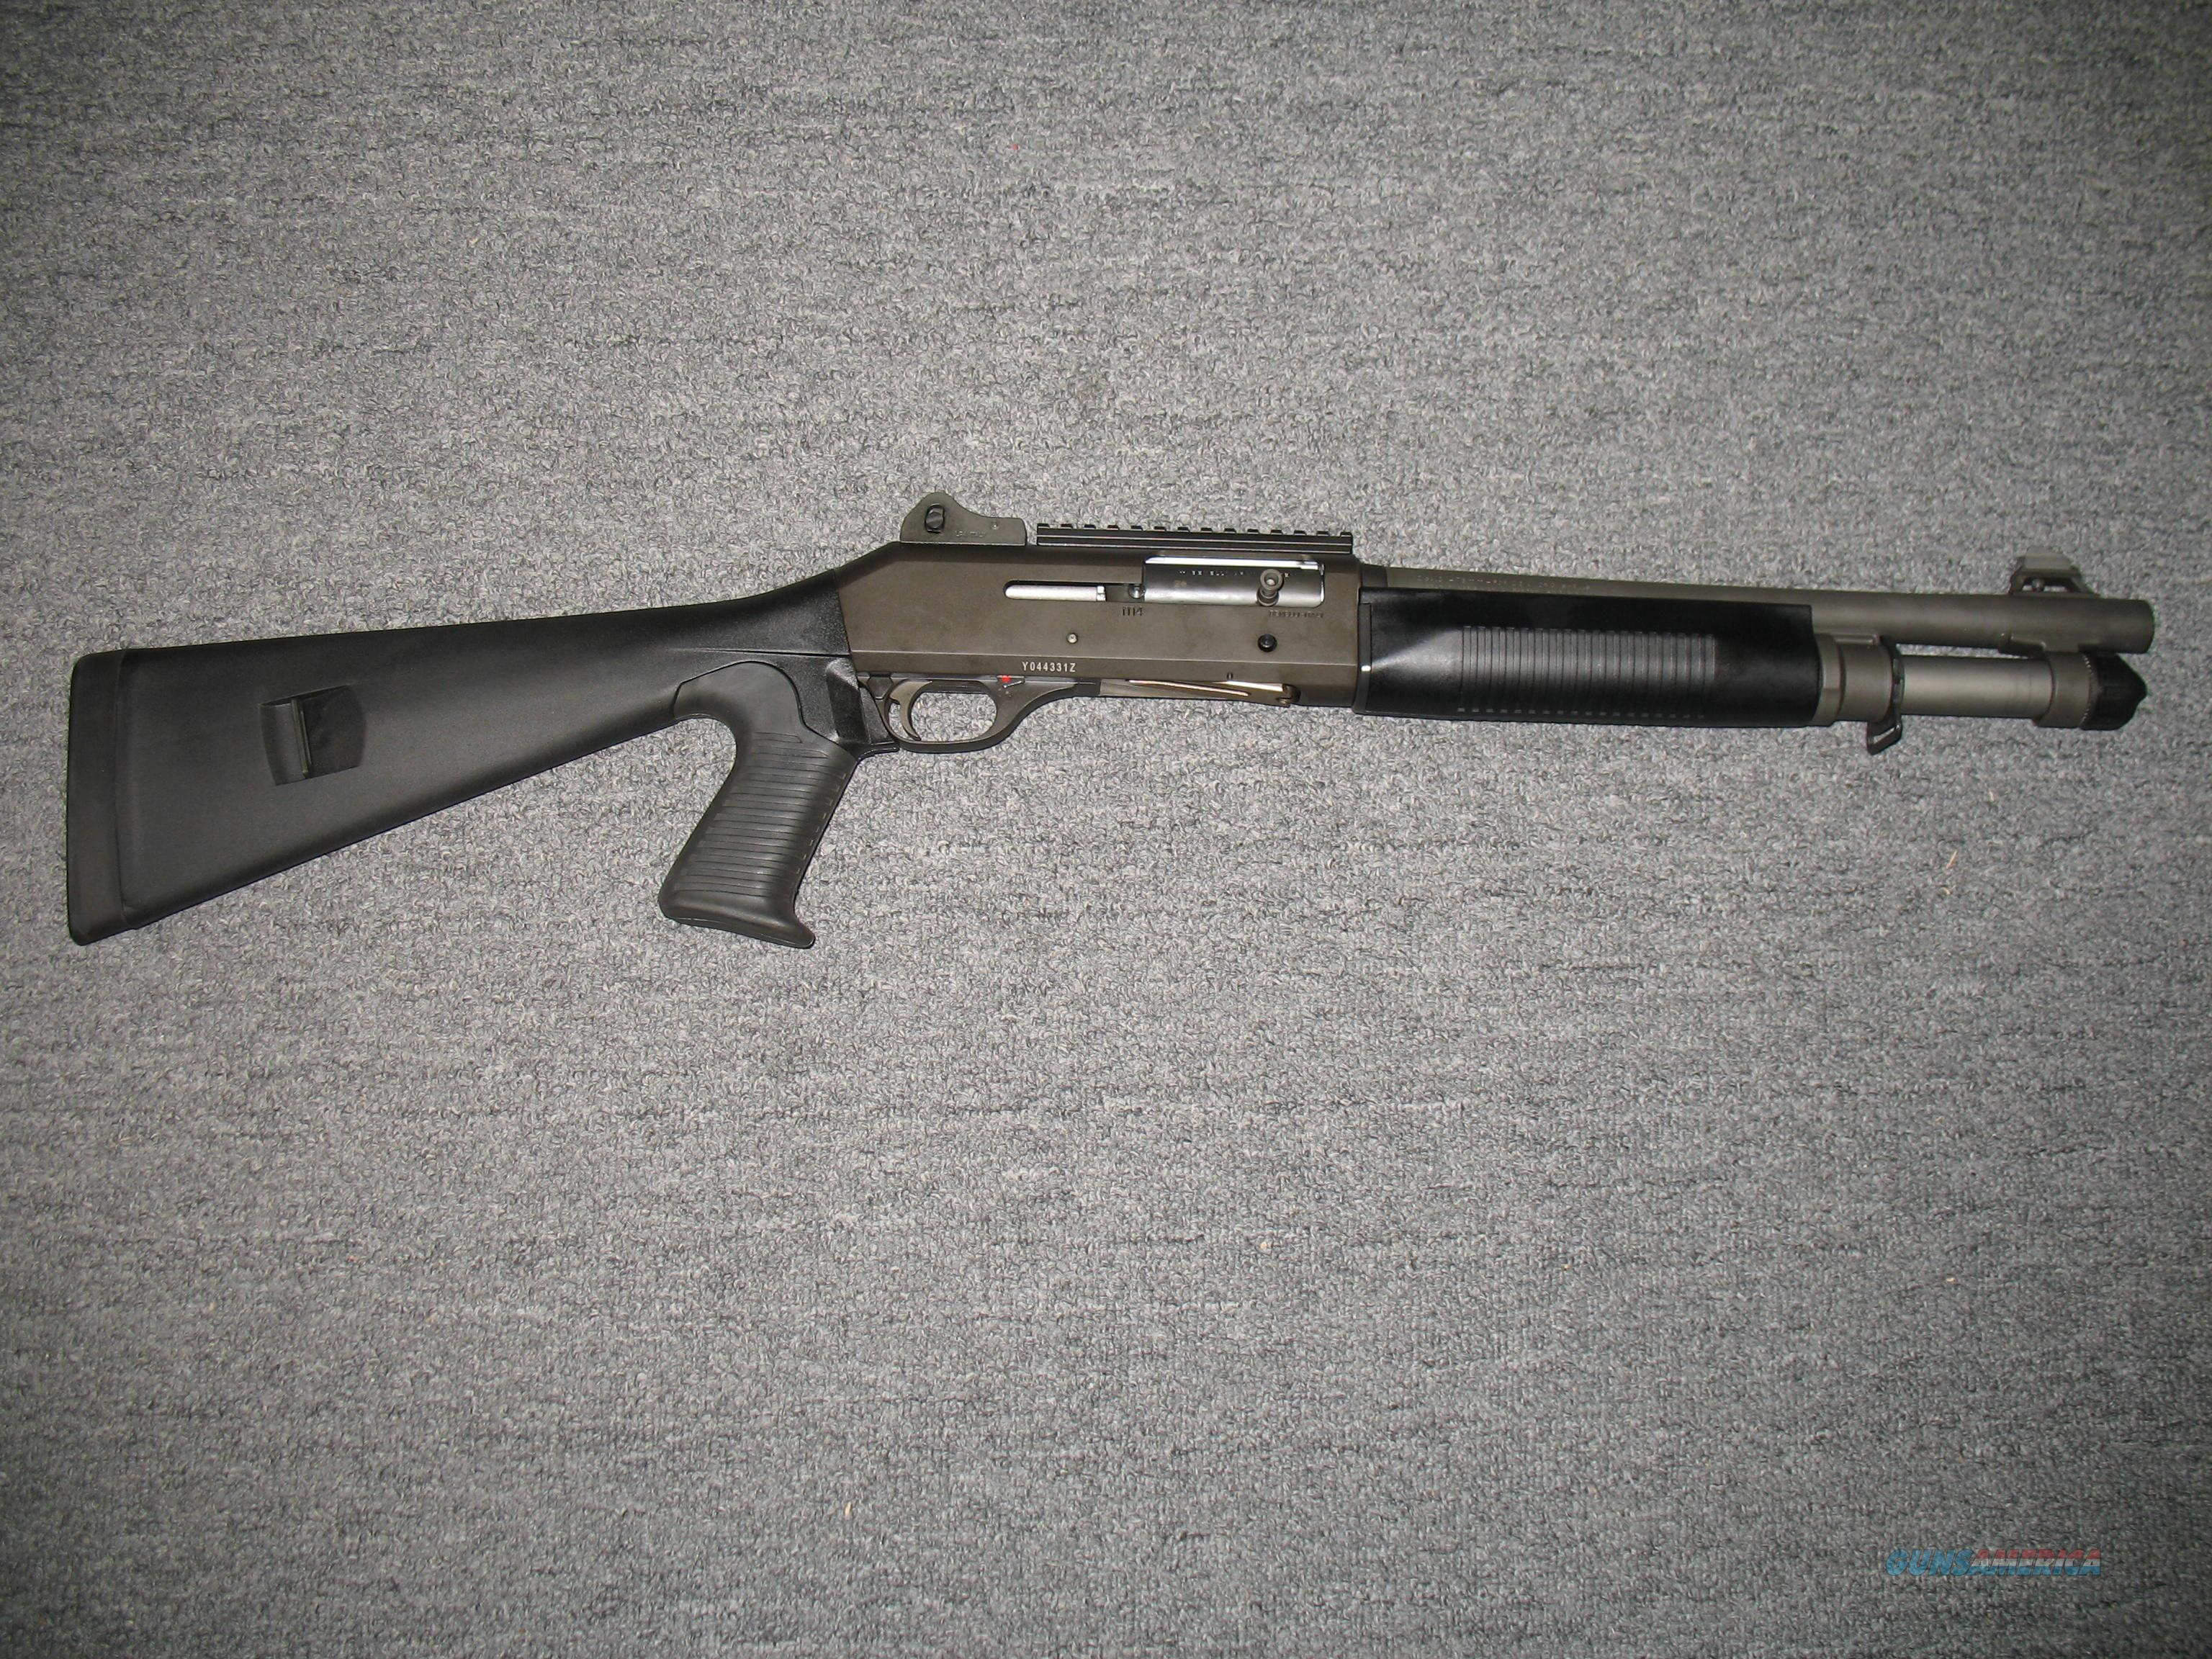 Benelli M4 Entry/Short Barreled Shotgun - Class III (11722)  Guns > Shotguns > Benelli Shotguns > Tactical